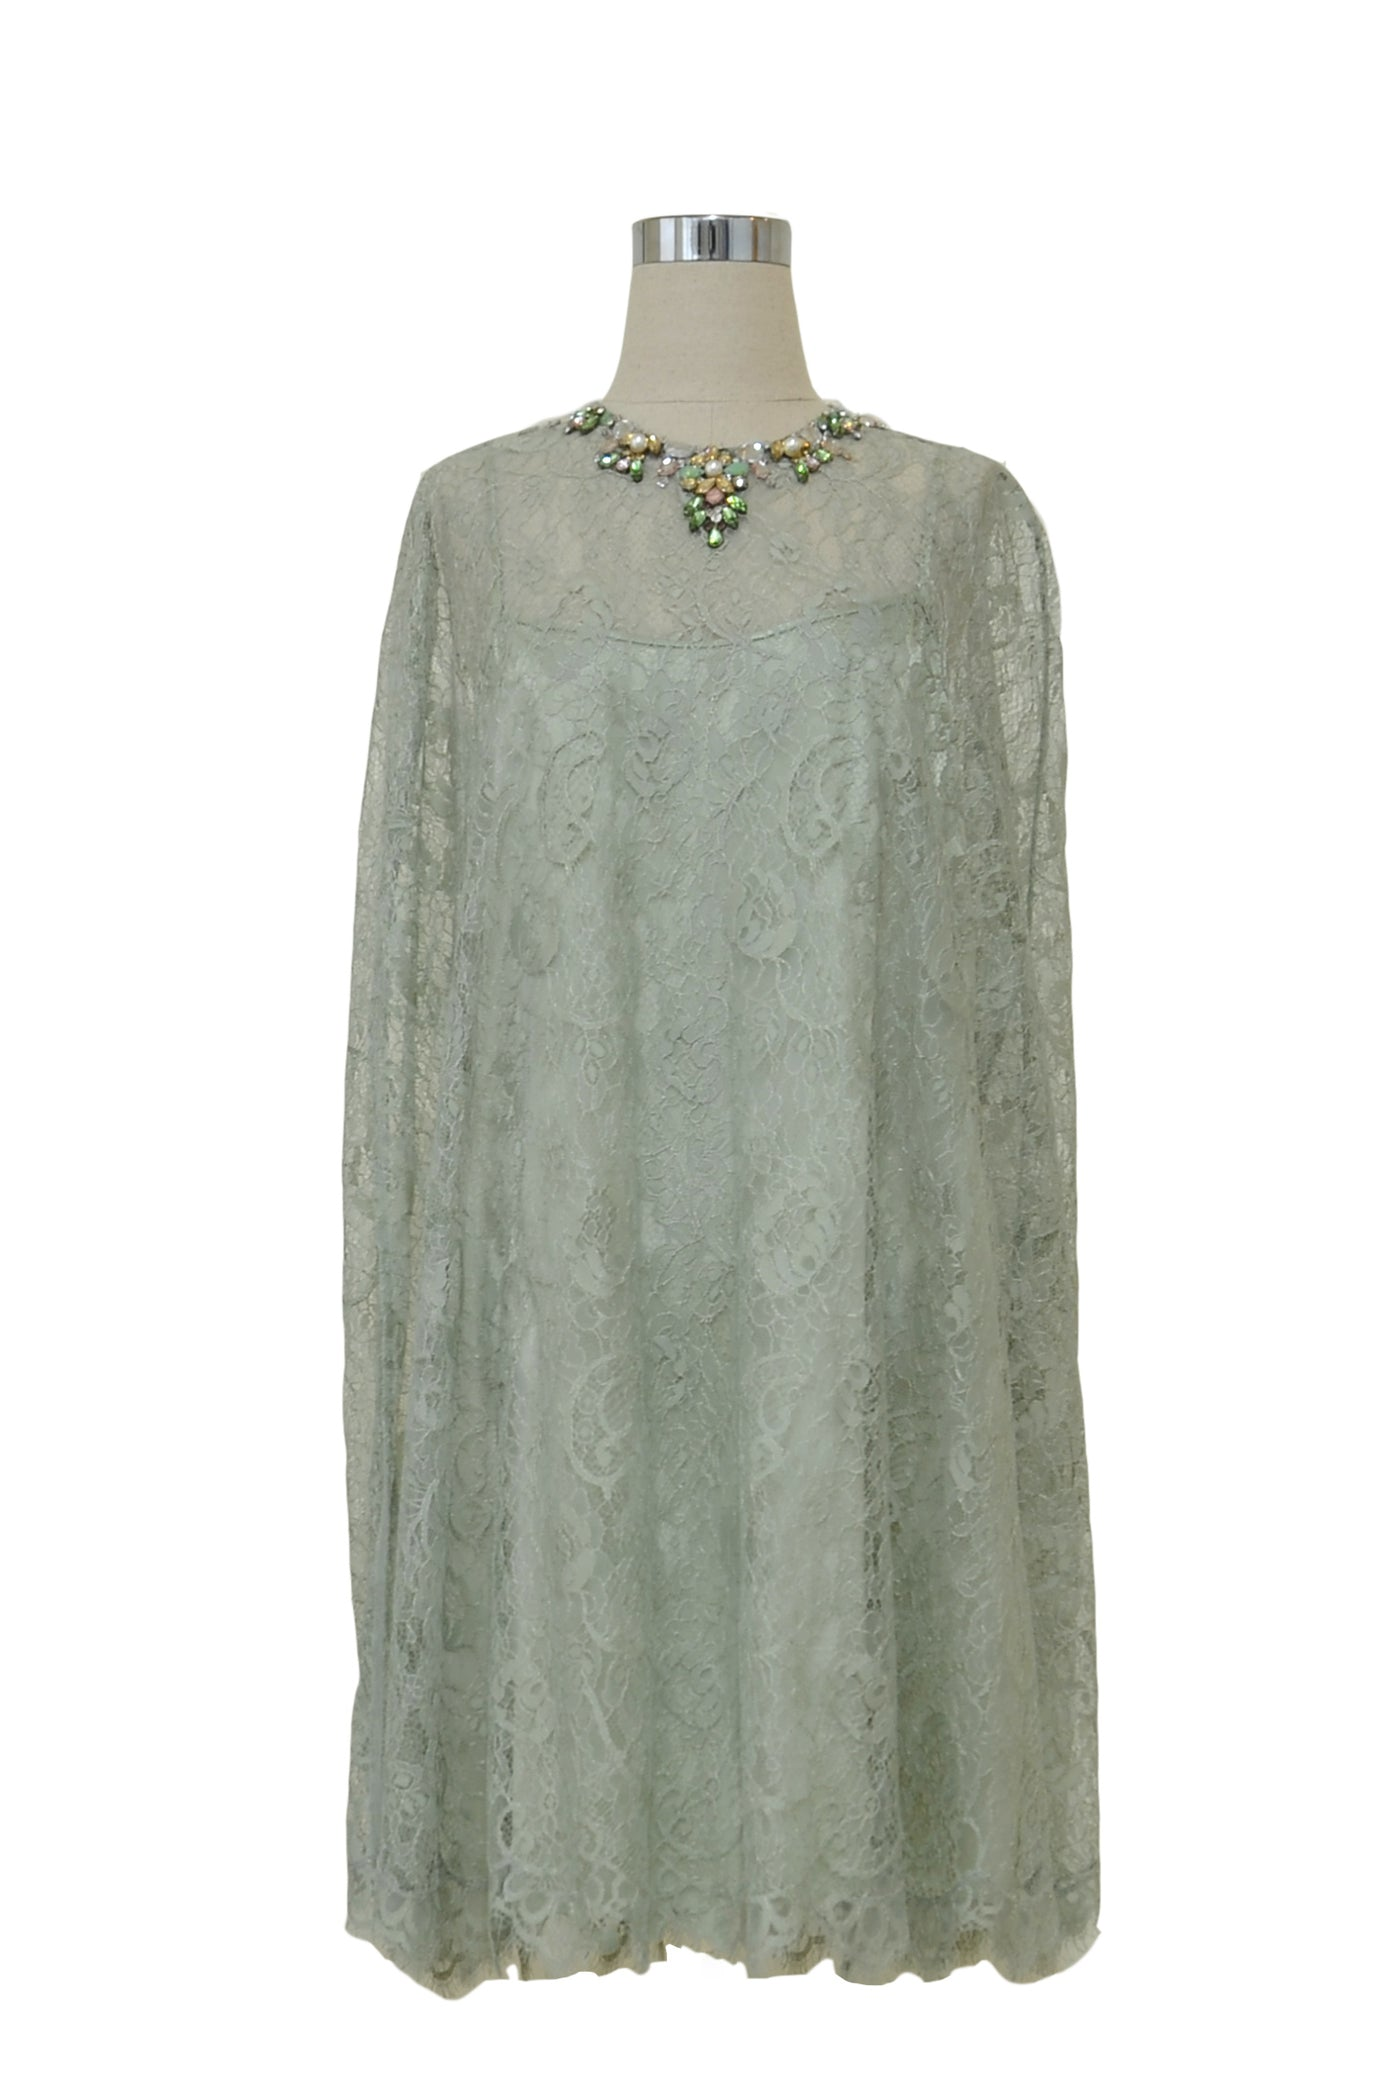 Rent: Studio 133 by Biyan Green Pastel Lace Kaftan